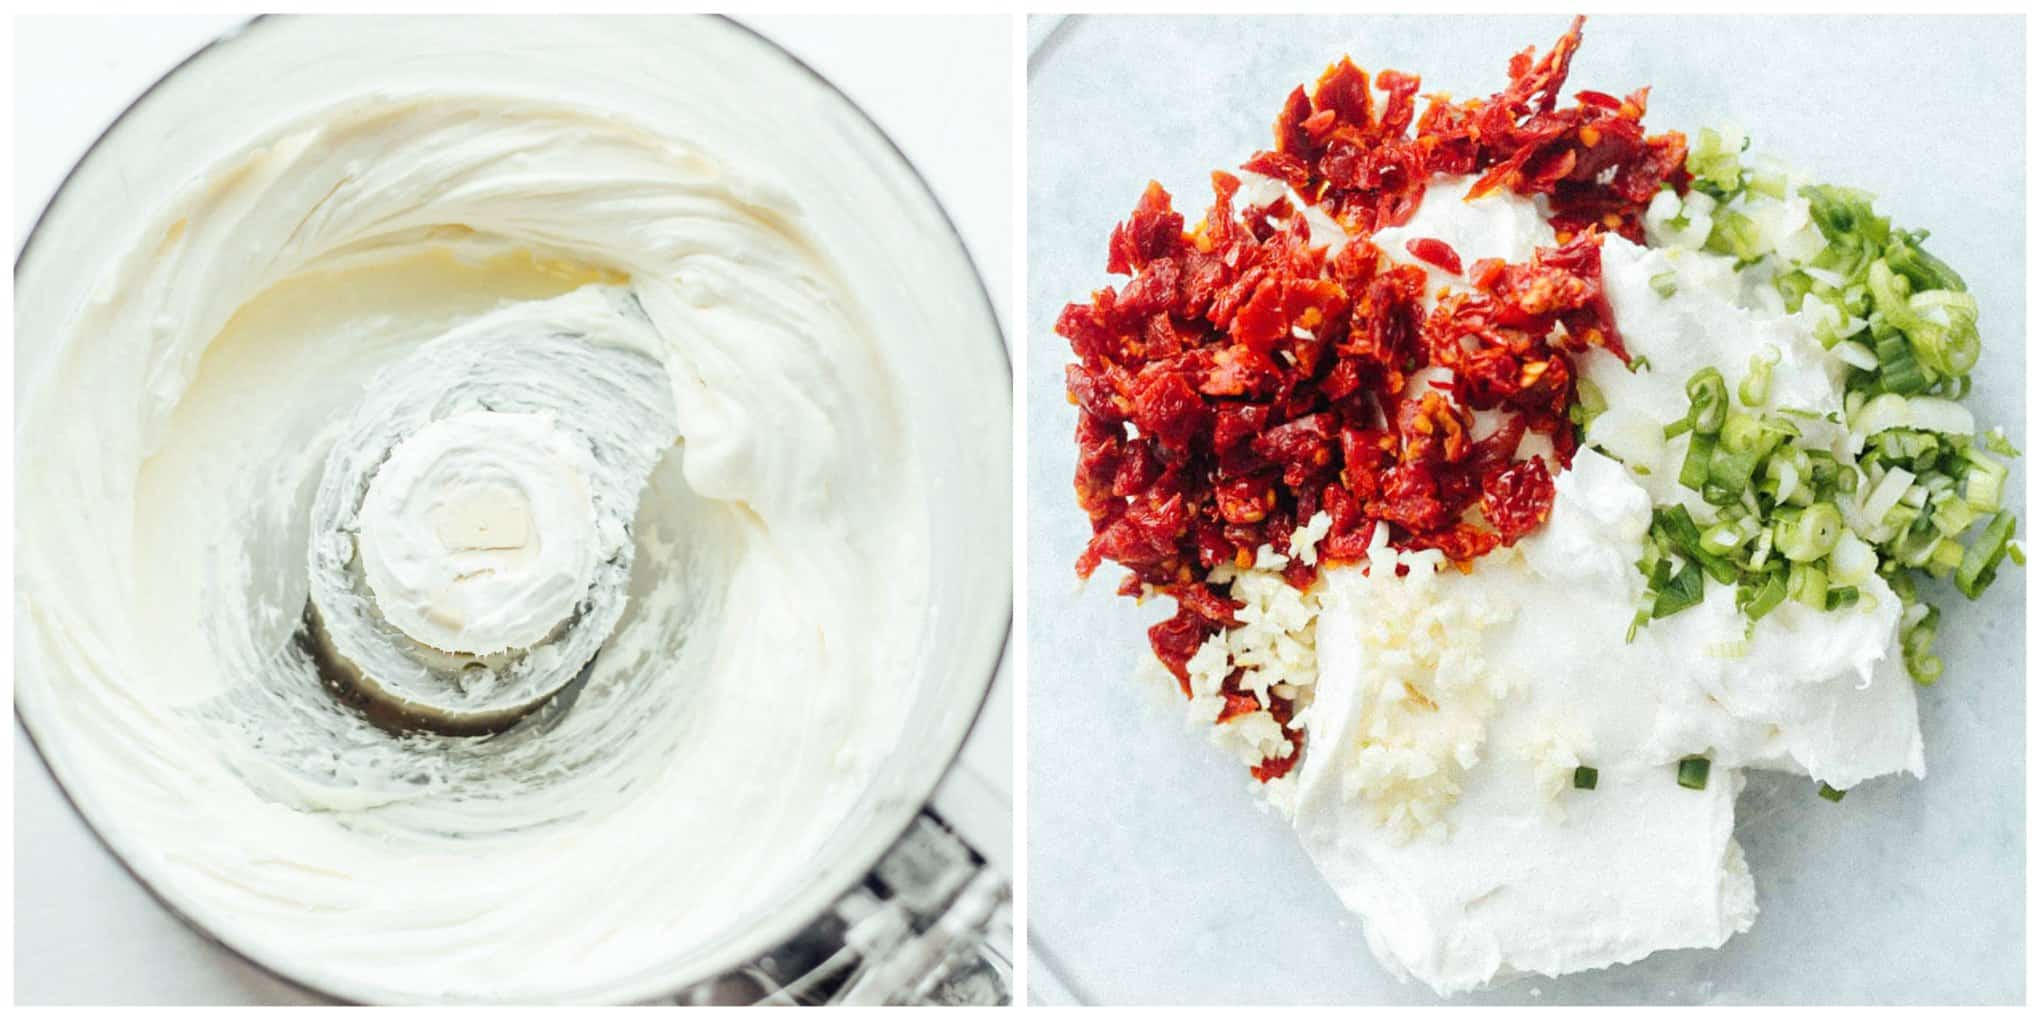 A 2-photo collage of the whipped feta in a food processor and the whipped feta filling mixed in a bowl